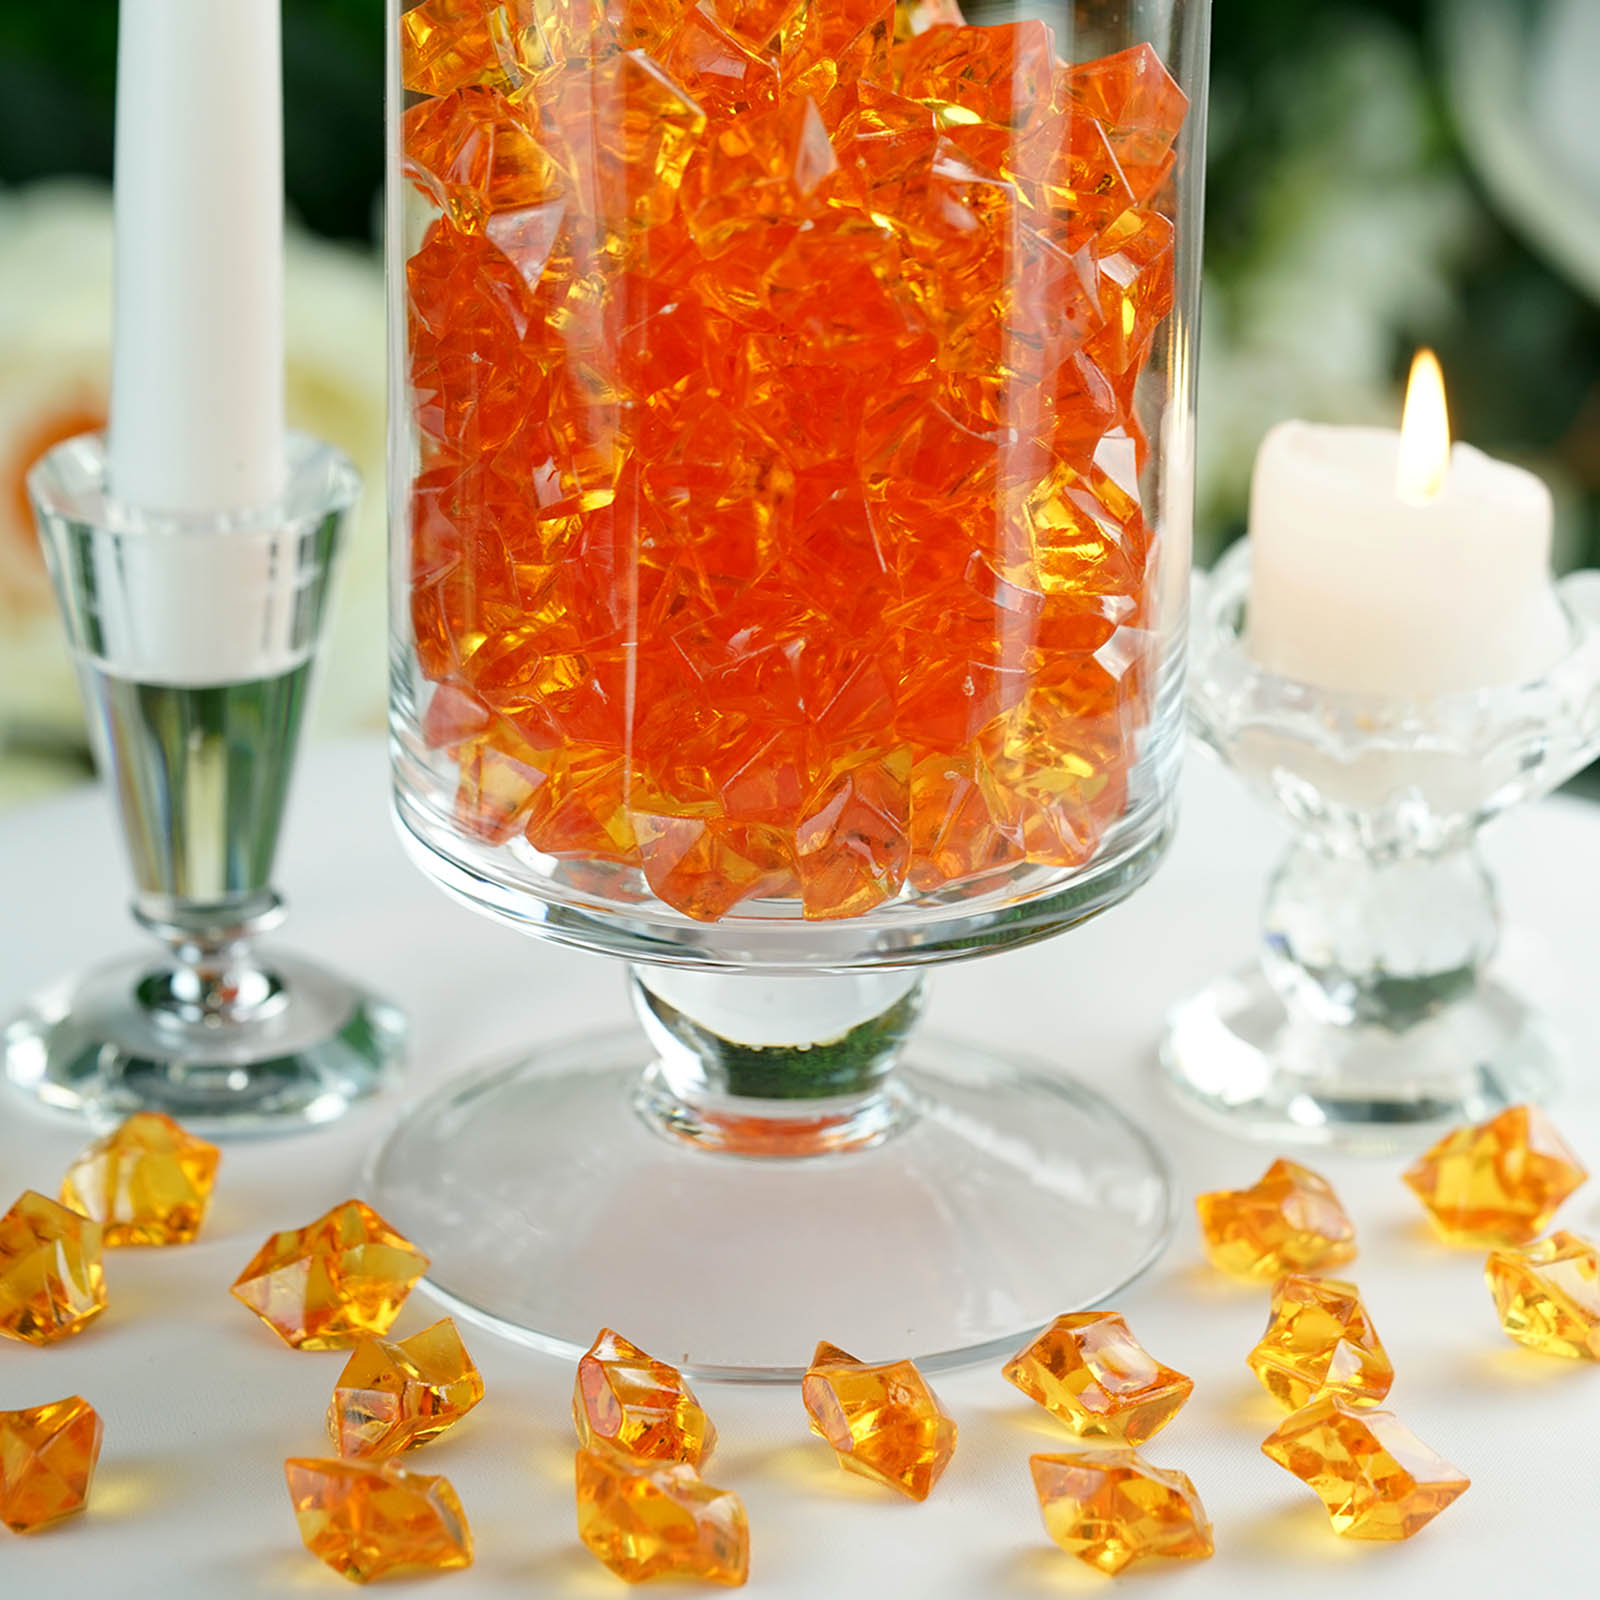 300-Acrylic-Ice-CRYSTAL-LIKE-Pieces-Wedding-Centerpieces-Decorations-Supplies thumbnail 42